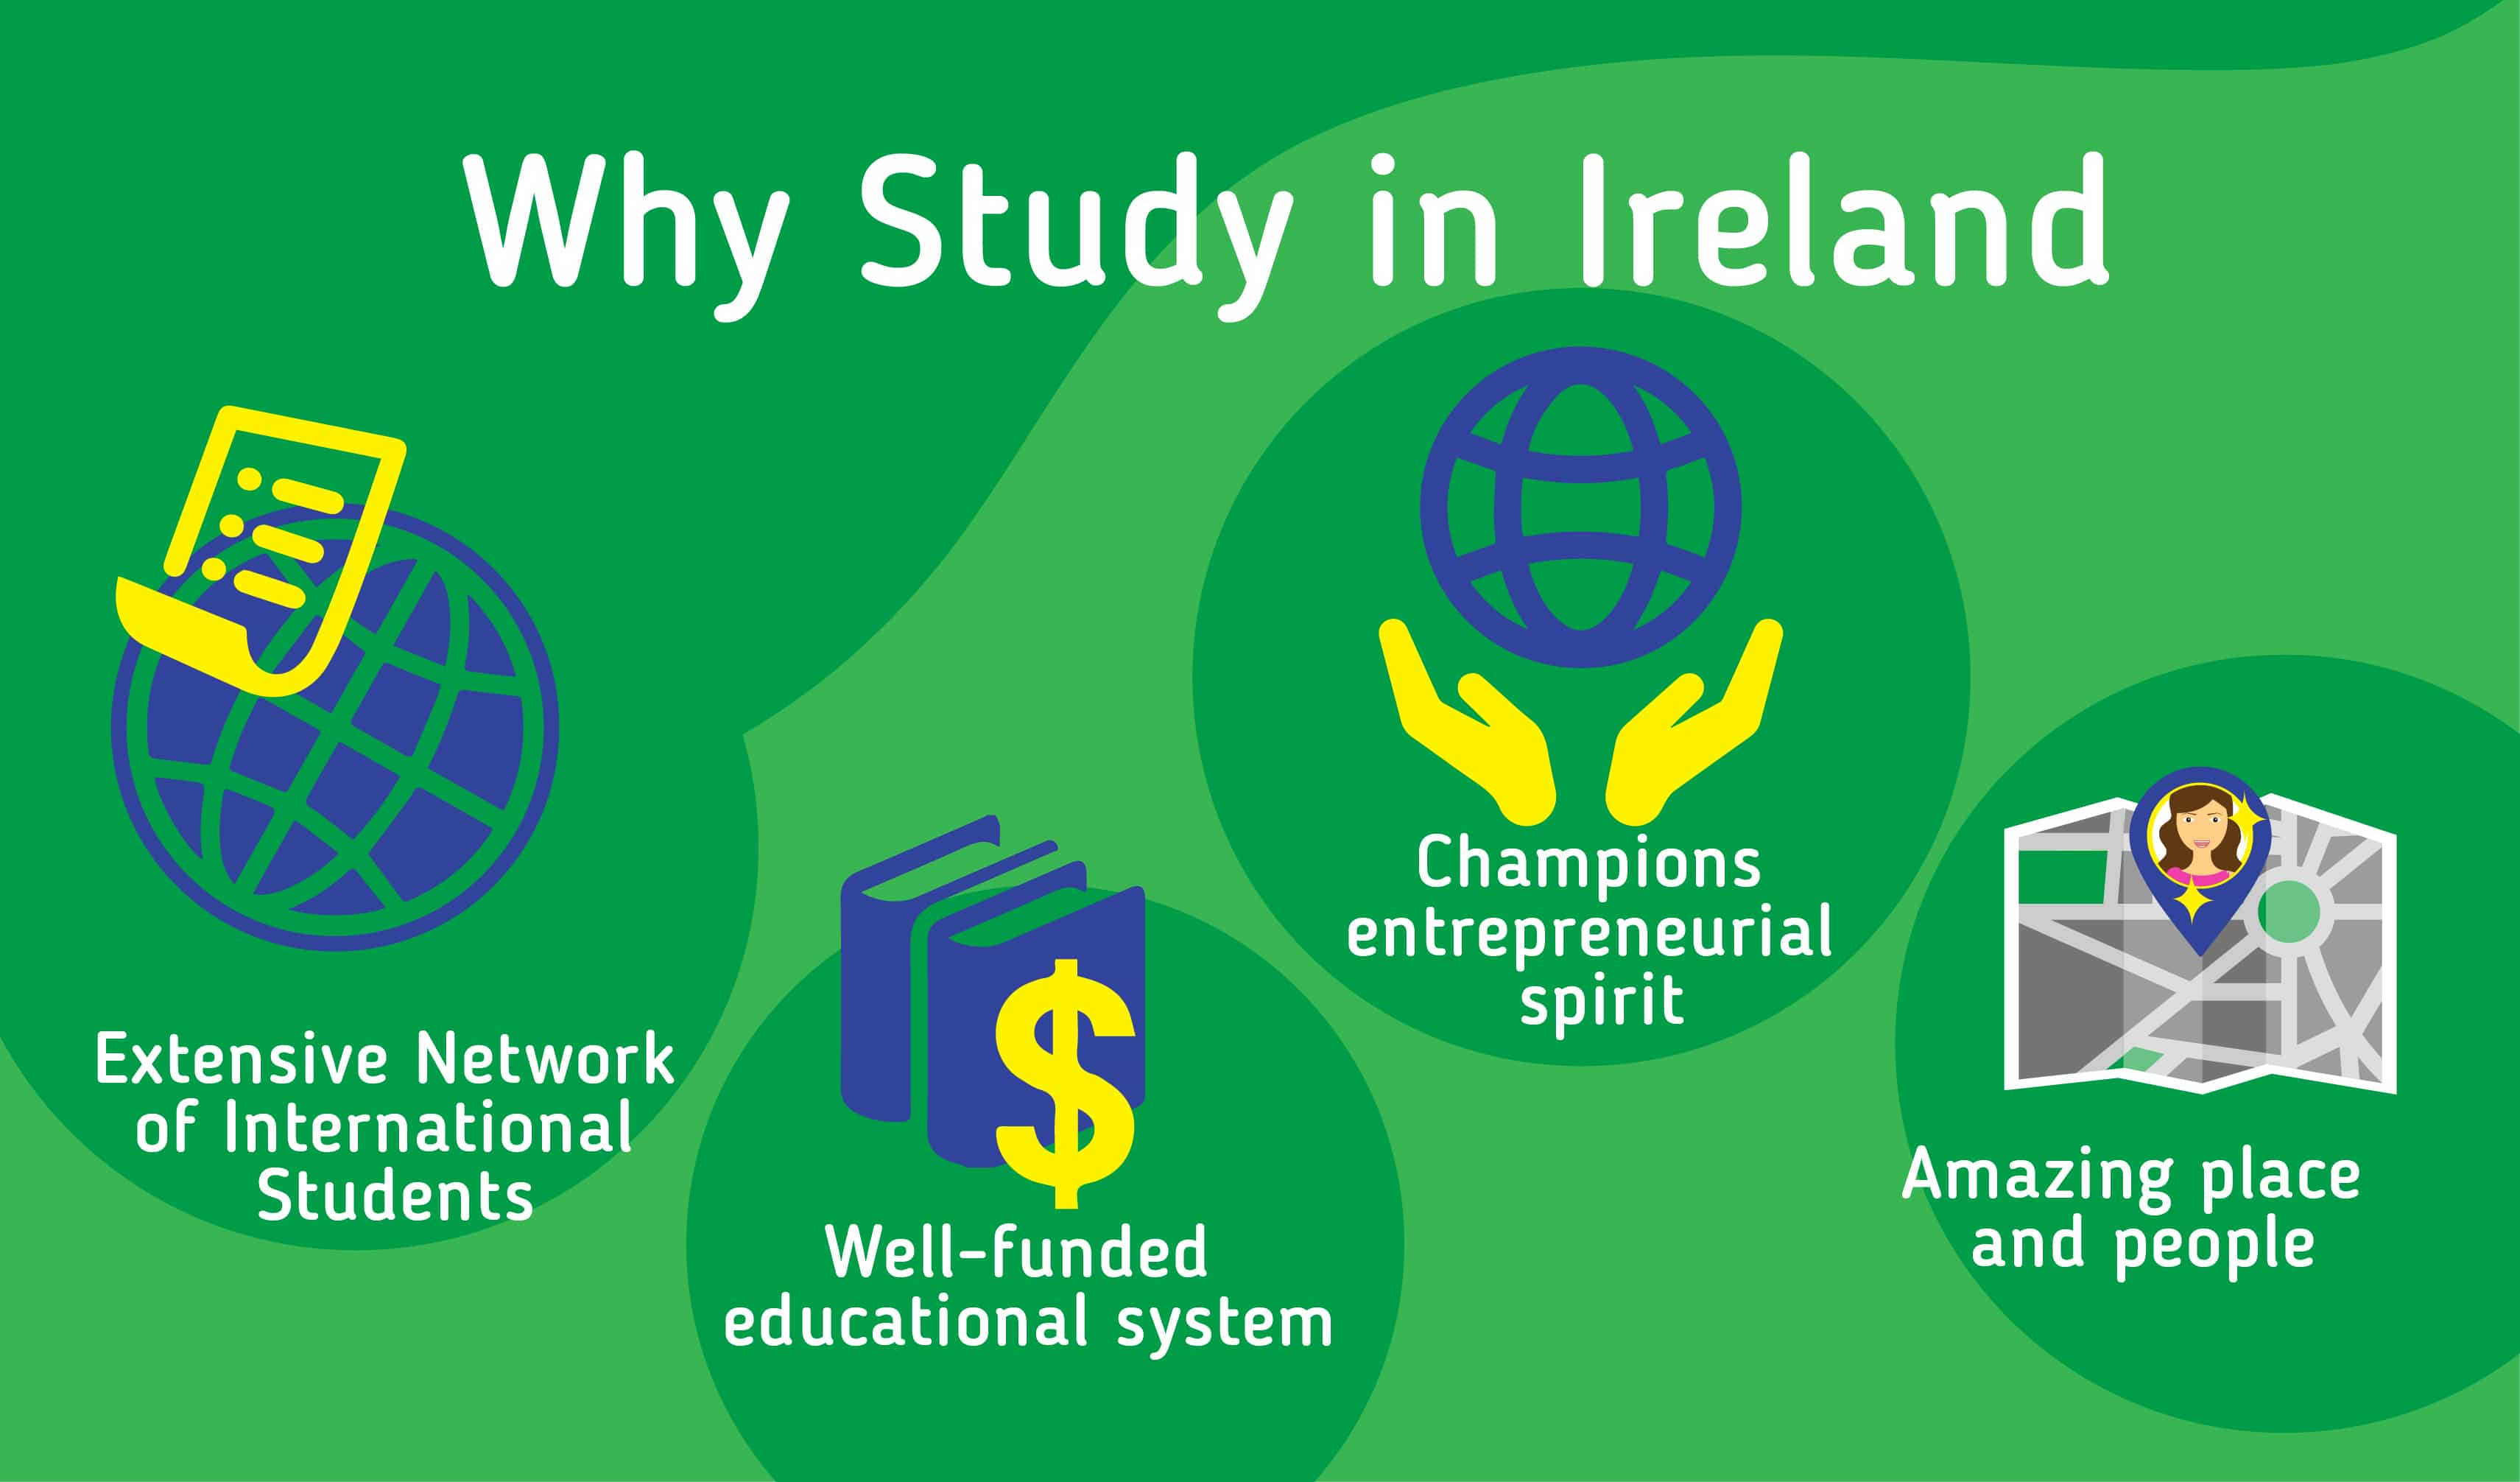 Why should you study in Ireland? Extensive network of internationals students - Well-funded educational system - Champions entrepreneurial spirit - Amazing place and people